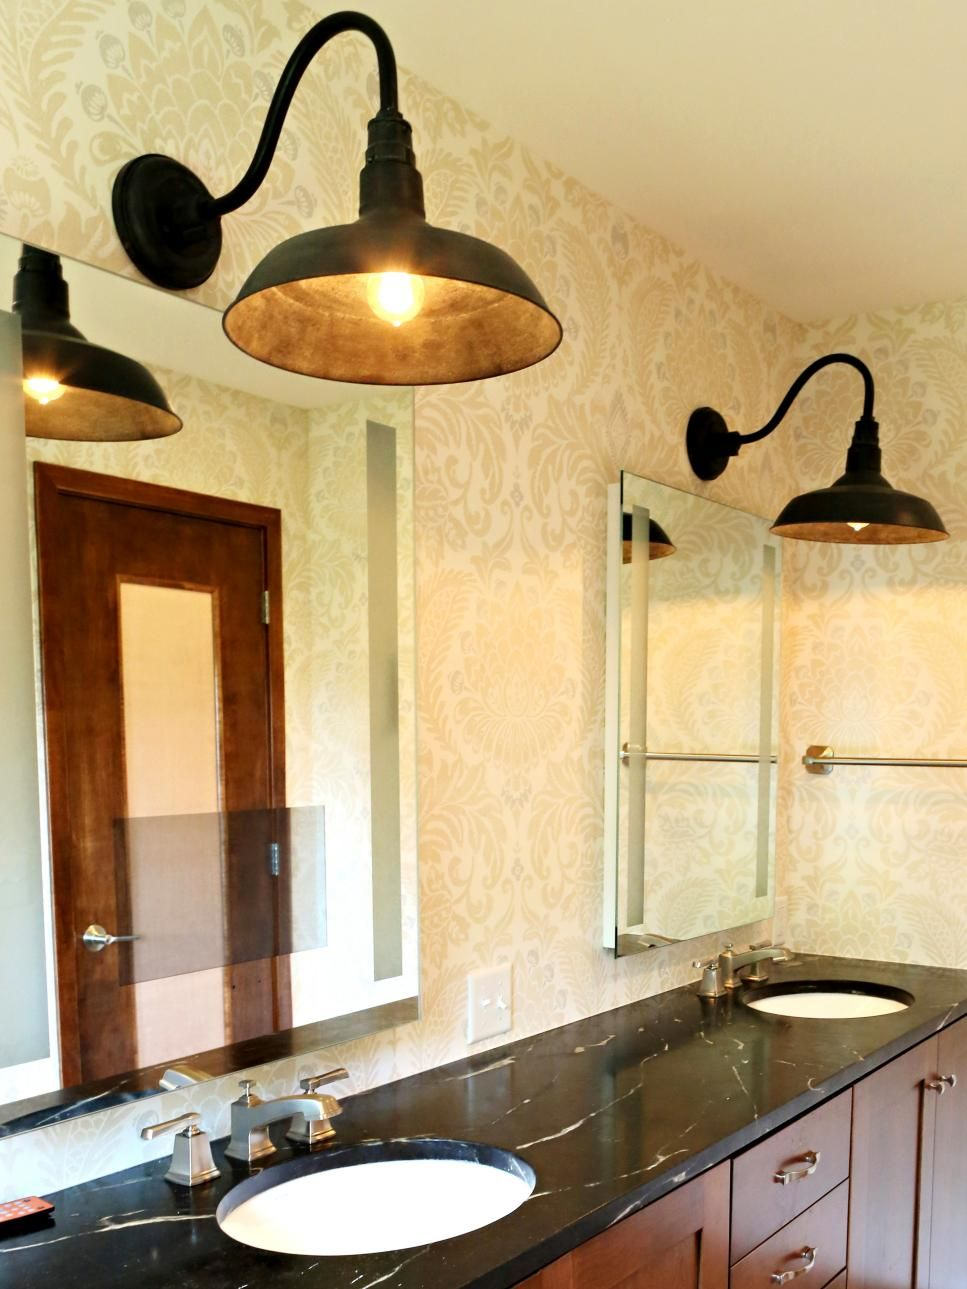 Pictures of Bathroom Lighting Ideas and Options   Small ...